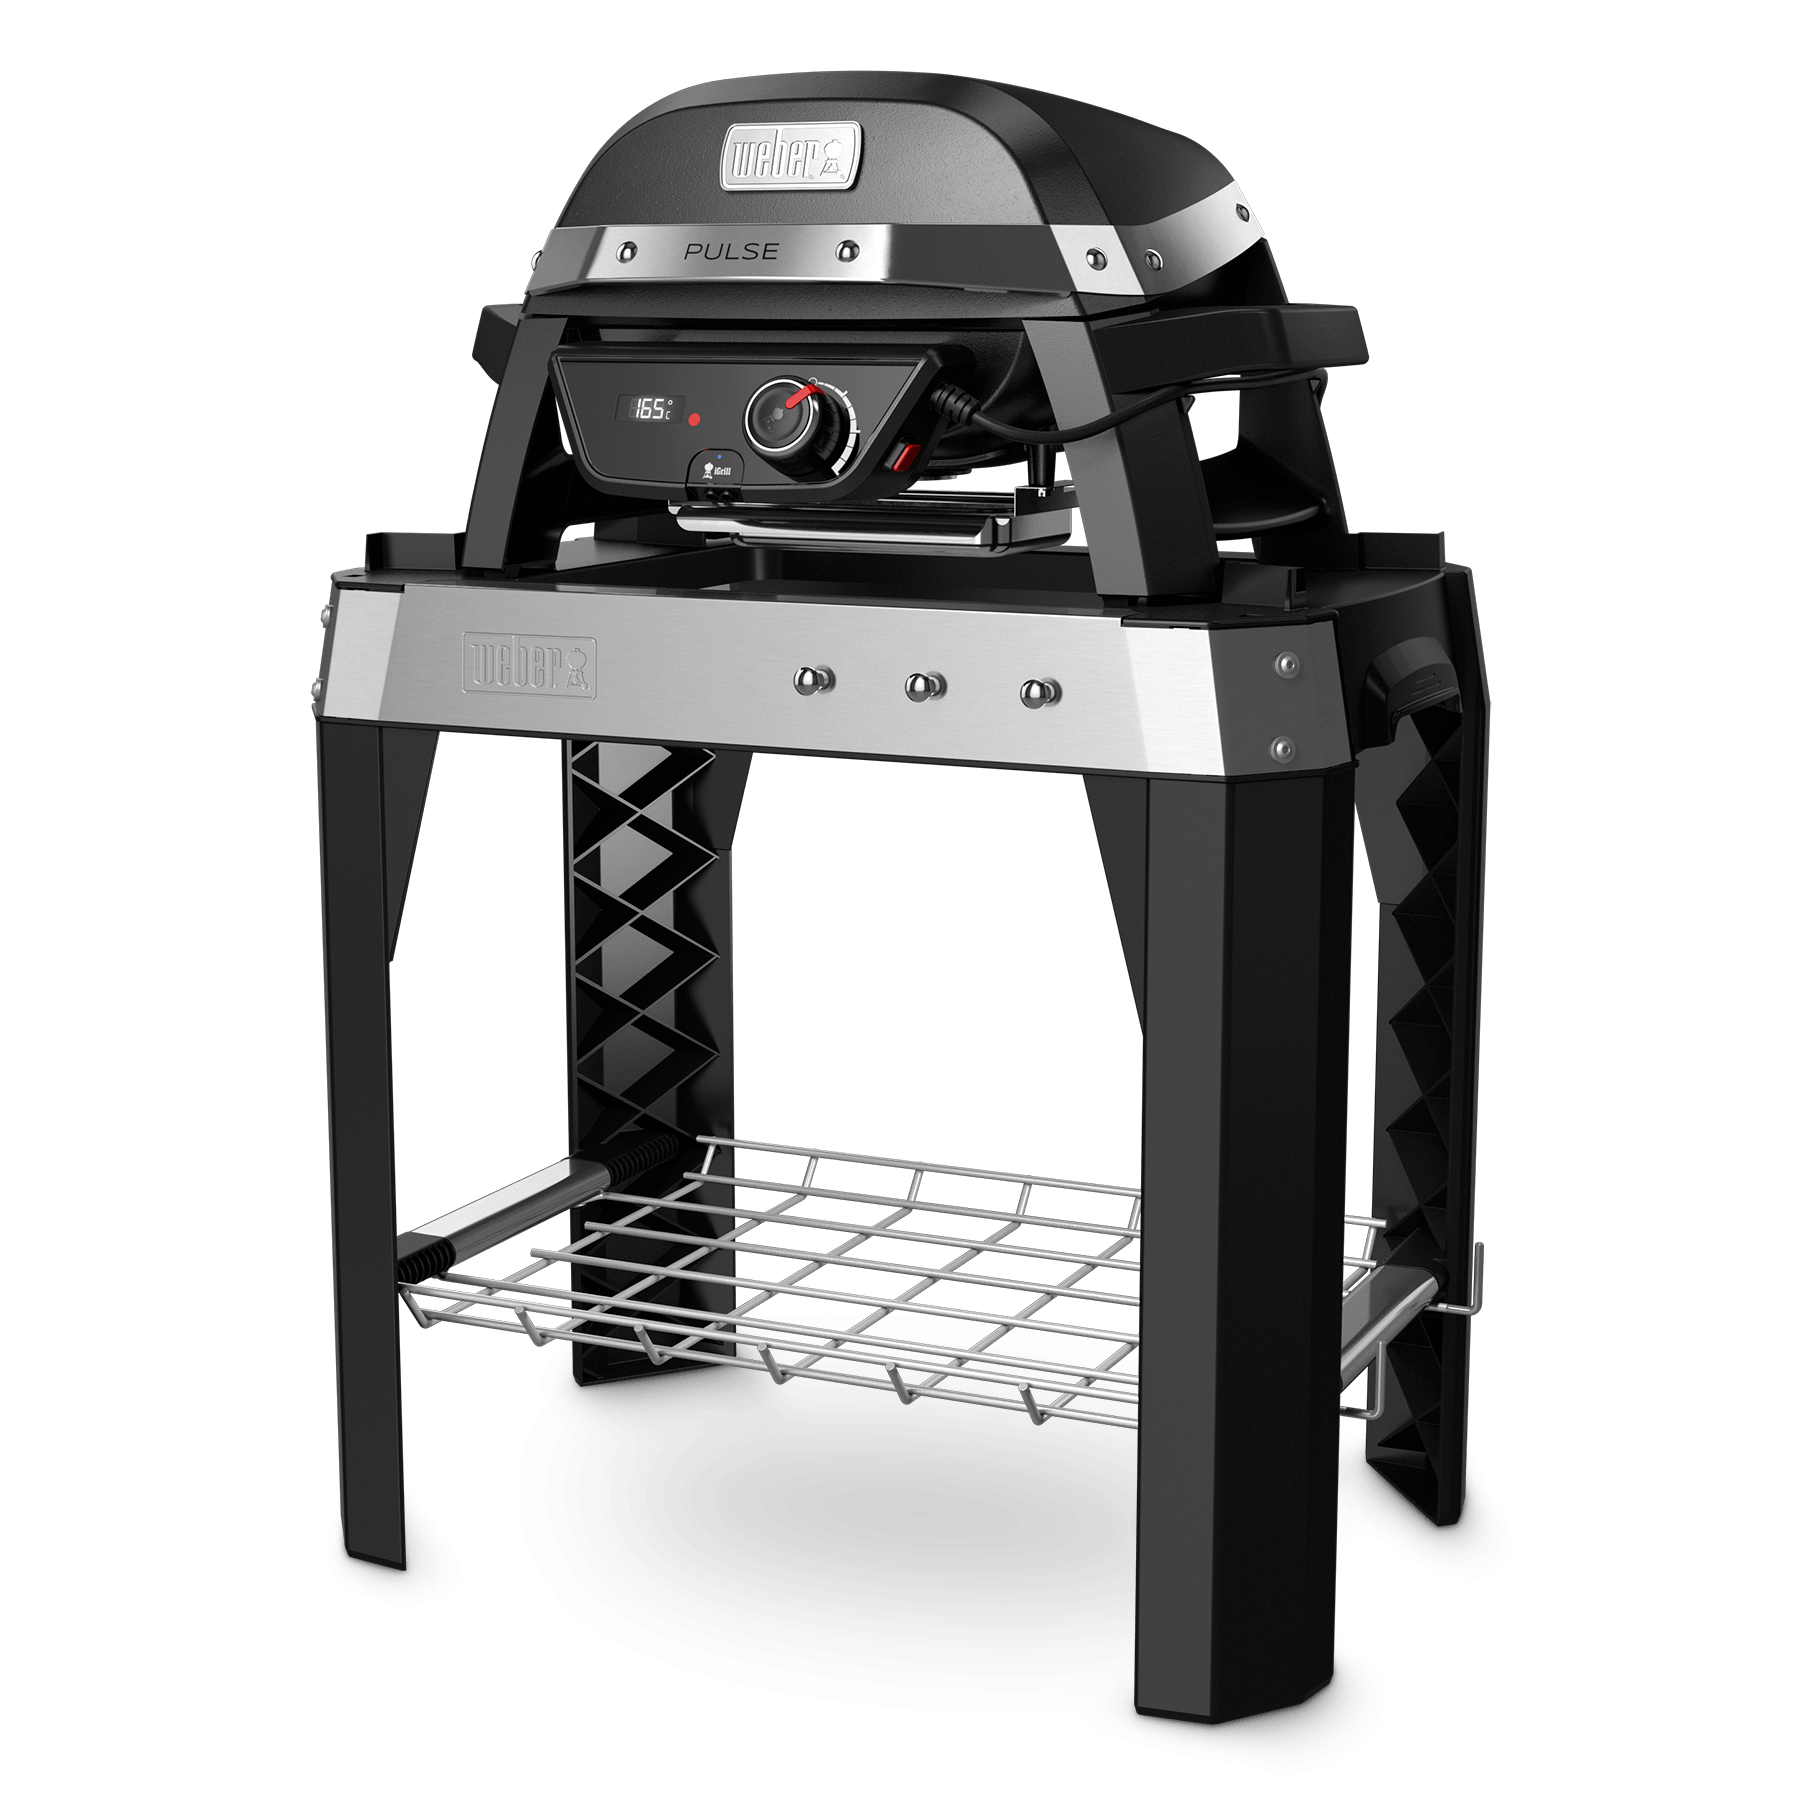 Pulse 1000 Elektrische barbecue met stand